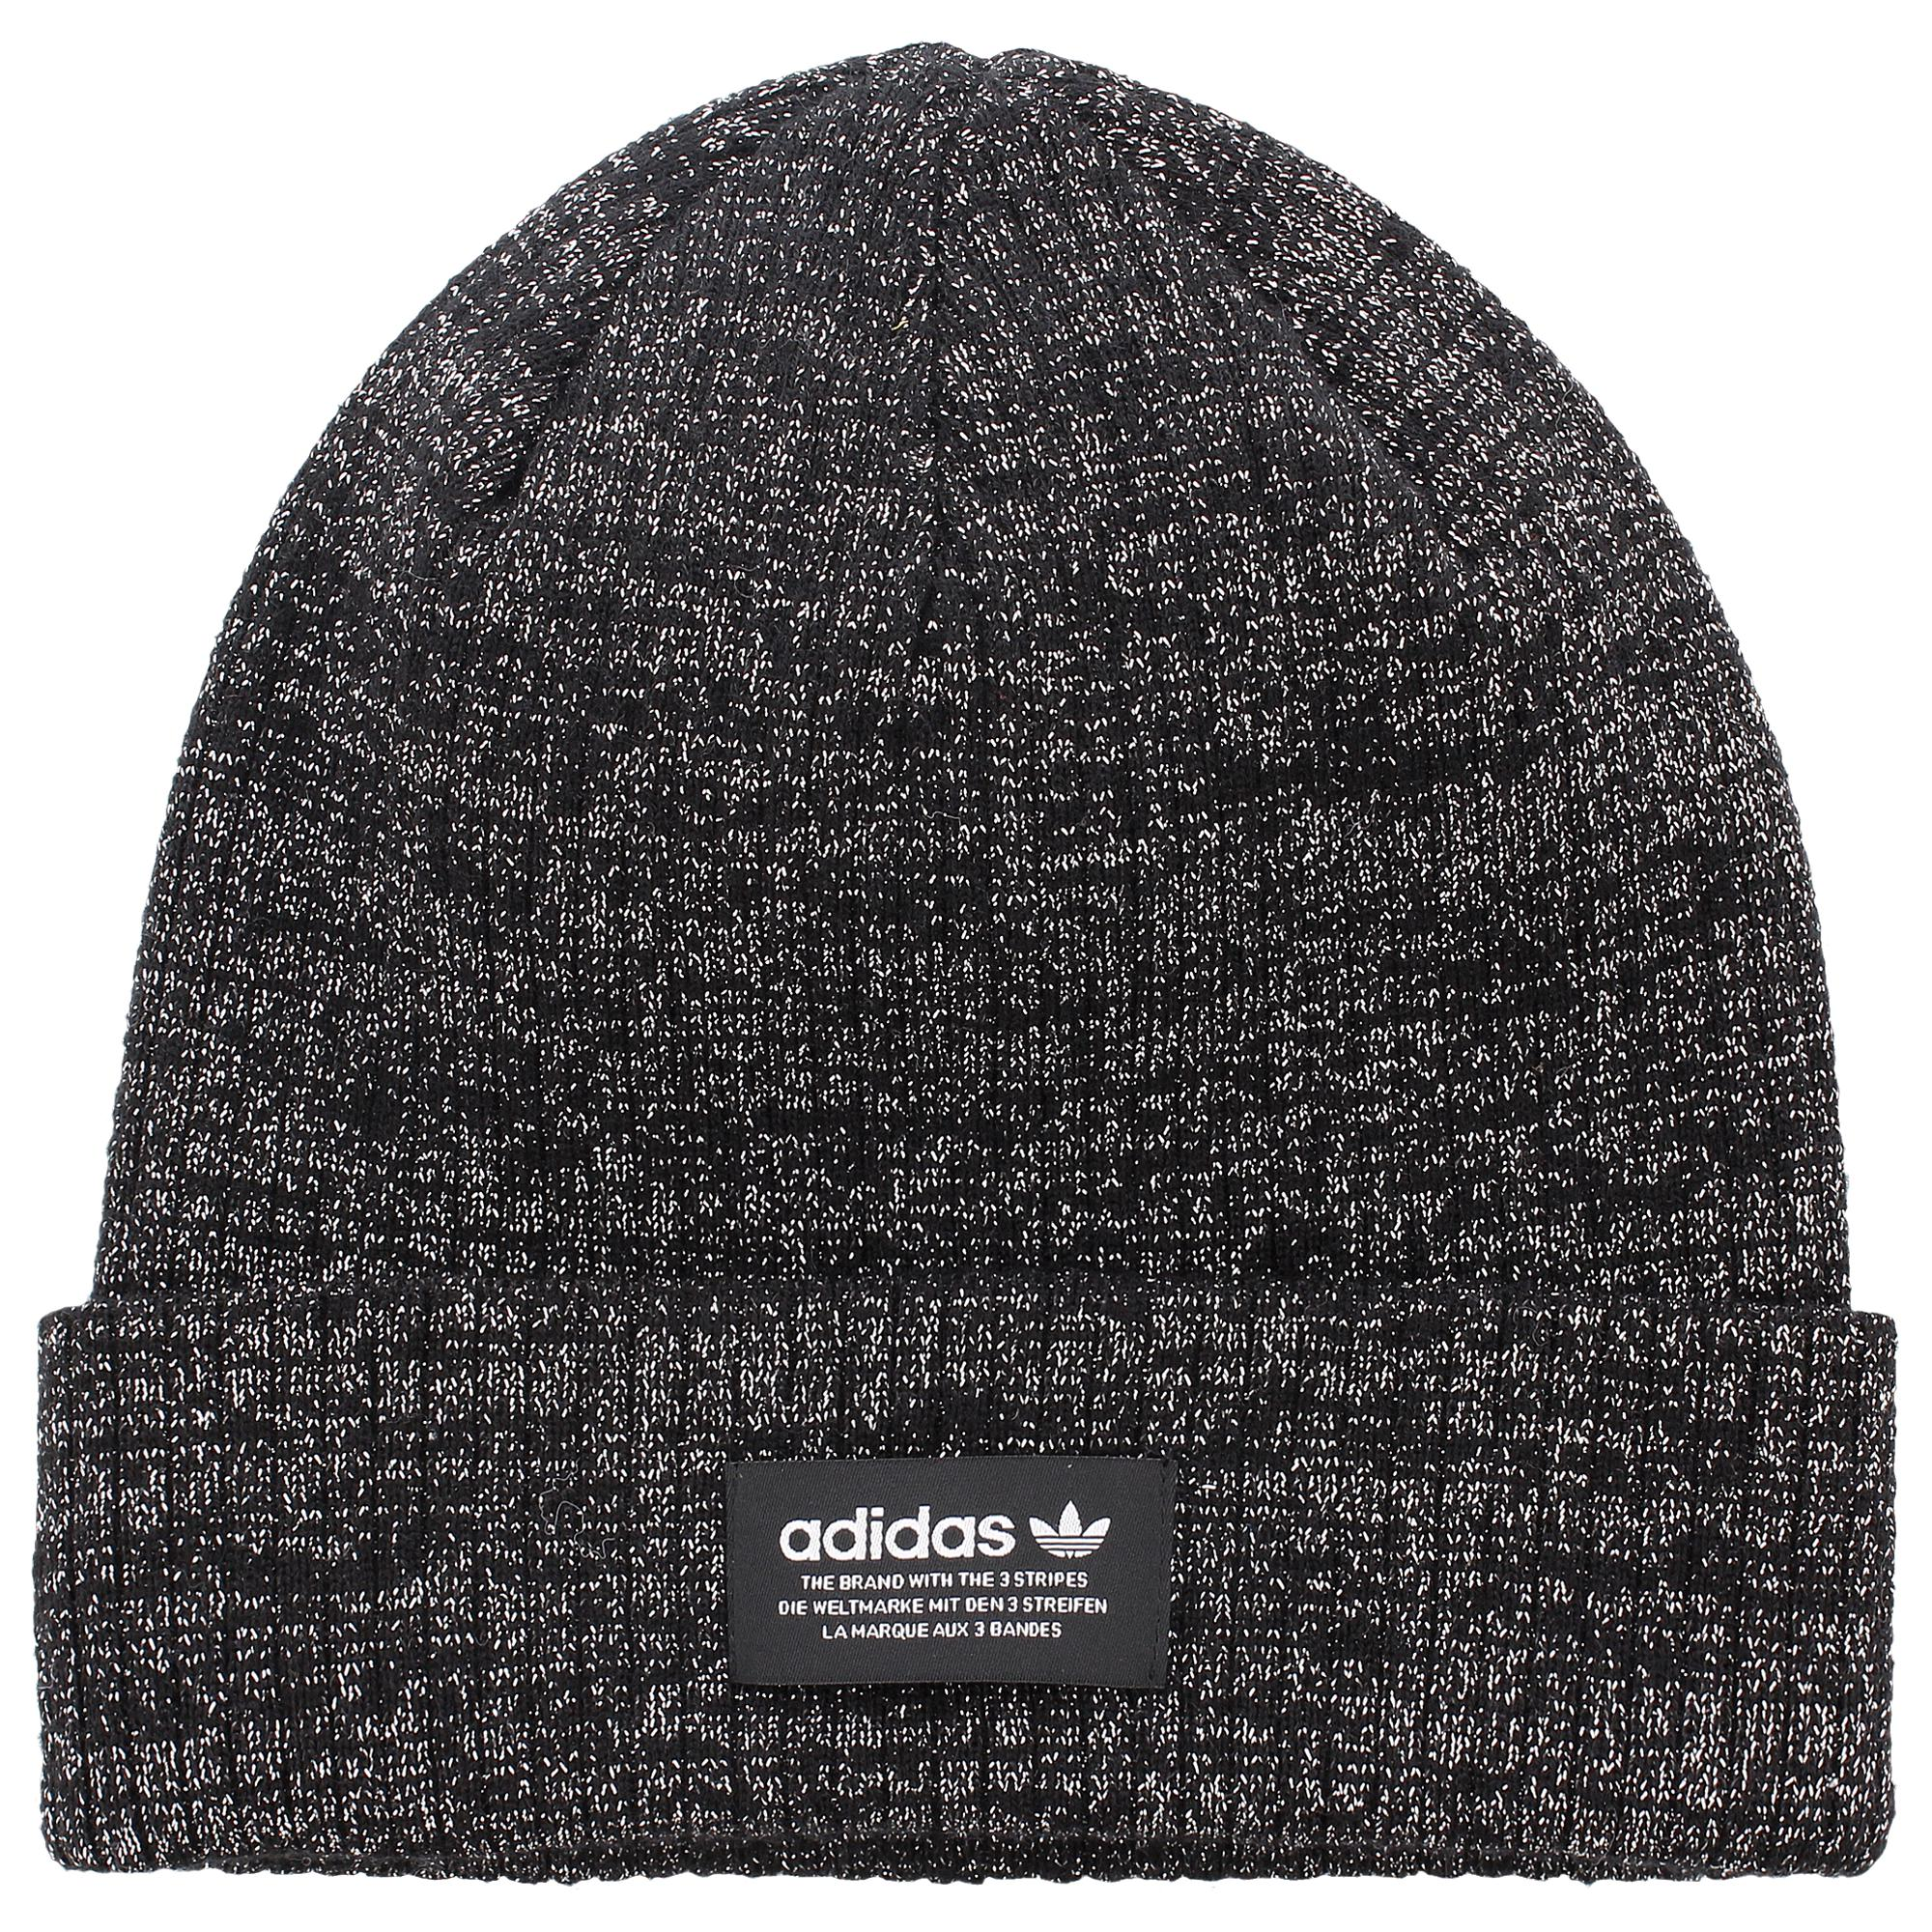 73a47762 adidas Originals Sparkle Beanie in Black - Lyst